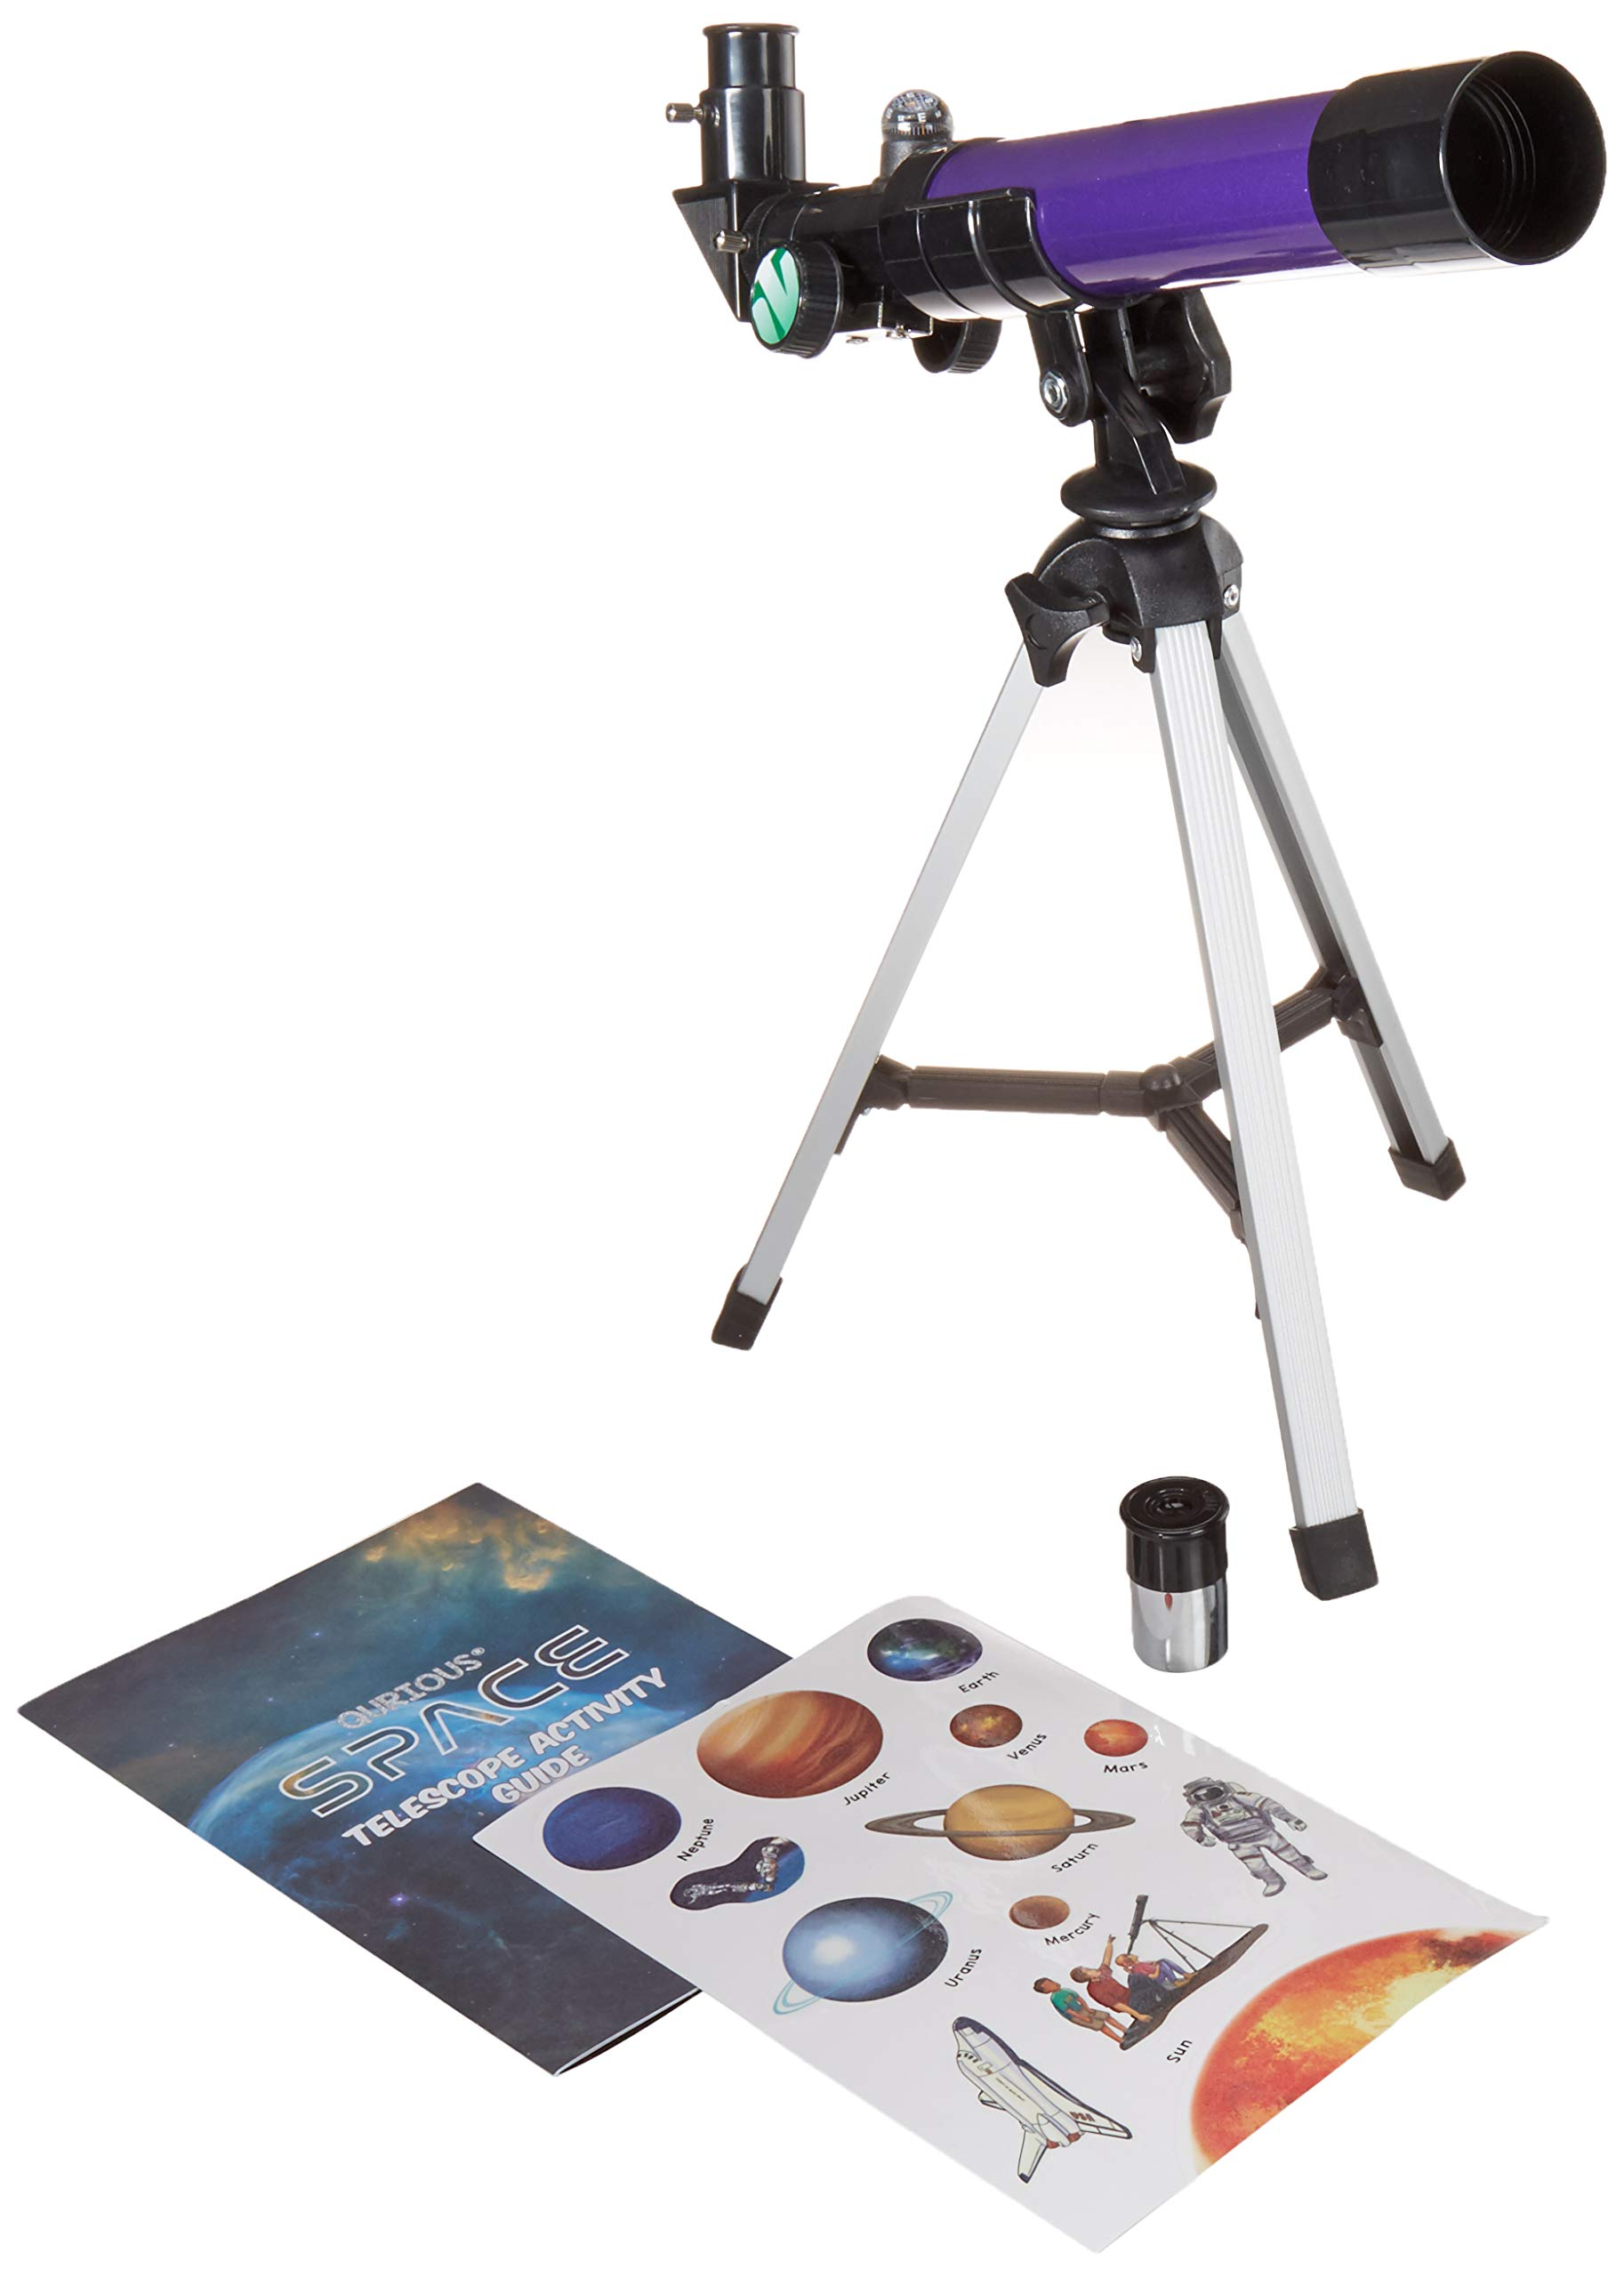 Qurious Space Kid's Explorer Telescope Gift Kit w Eco Carry Case 1650 | Children & Astronomy Beginners | Moon Travel Scope | Tabletop Tripod | Compass | Glow-in-The-Dark Stickers | Science Education by Qurious